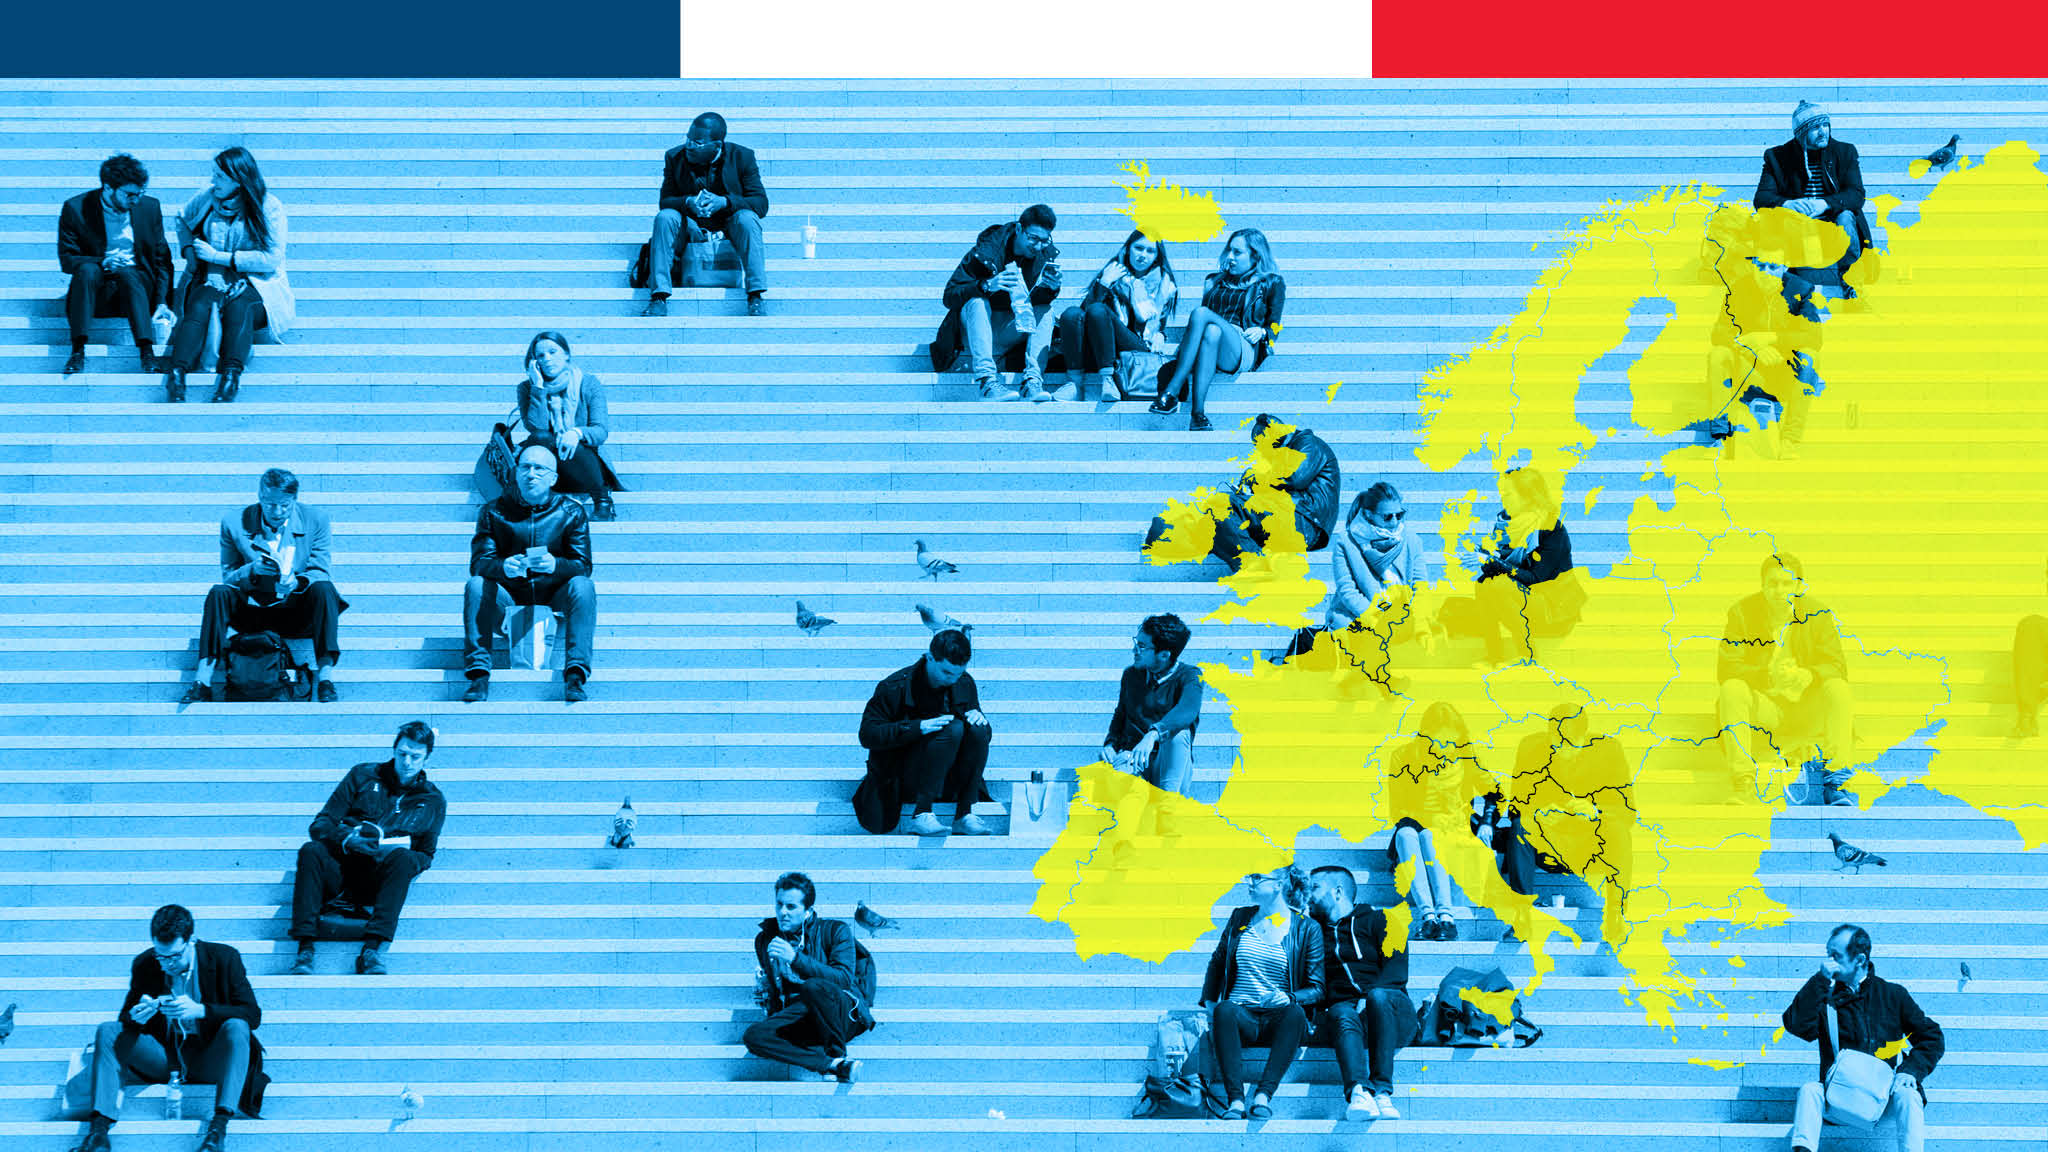 France faces growing threat of skill shortages